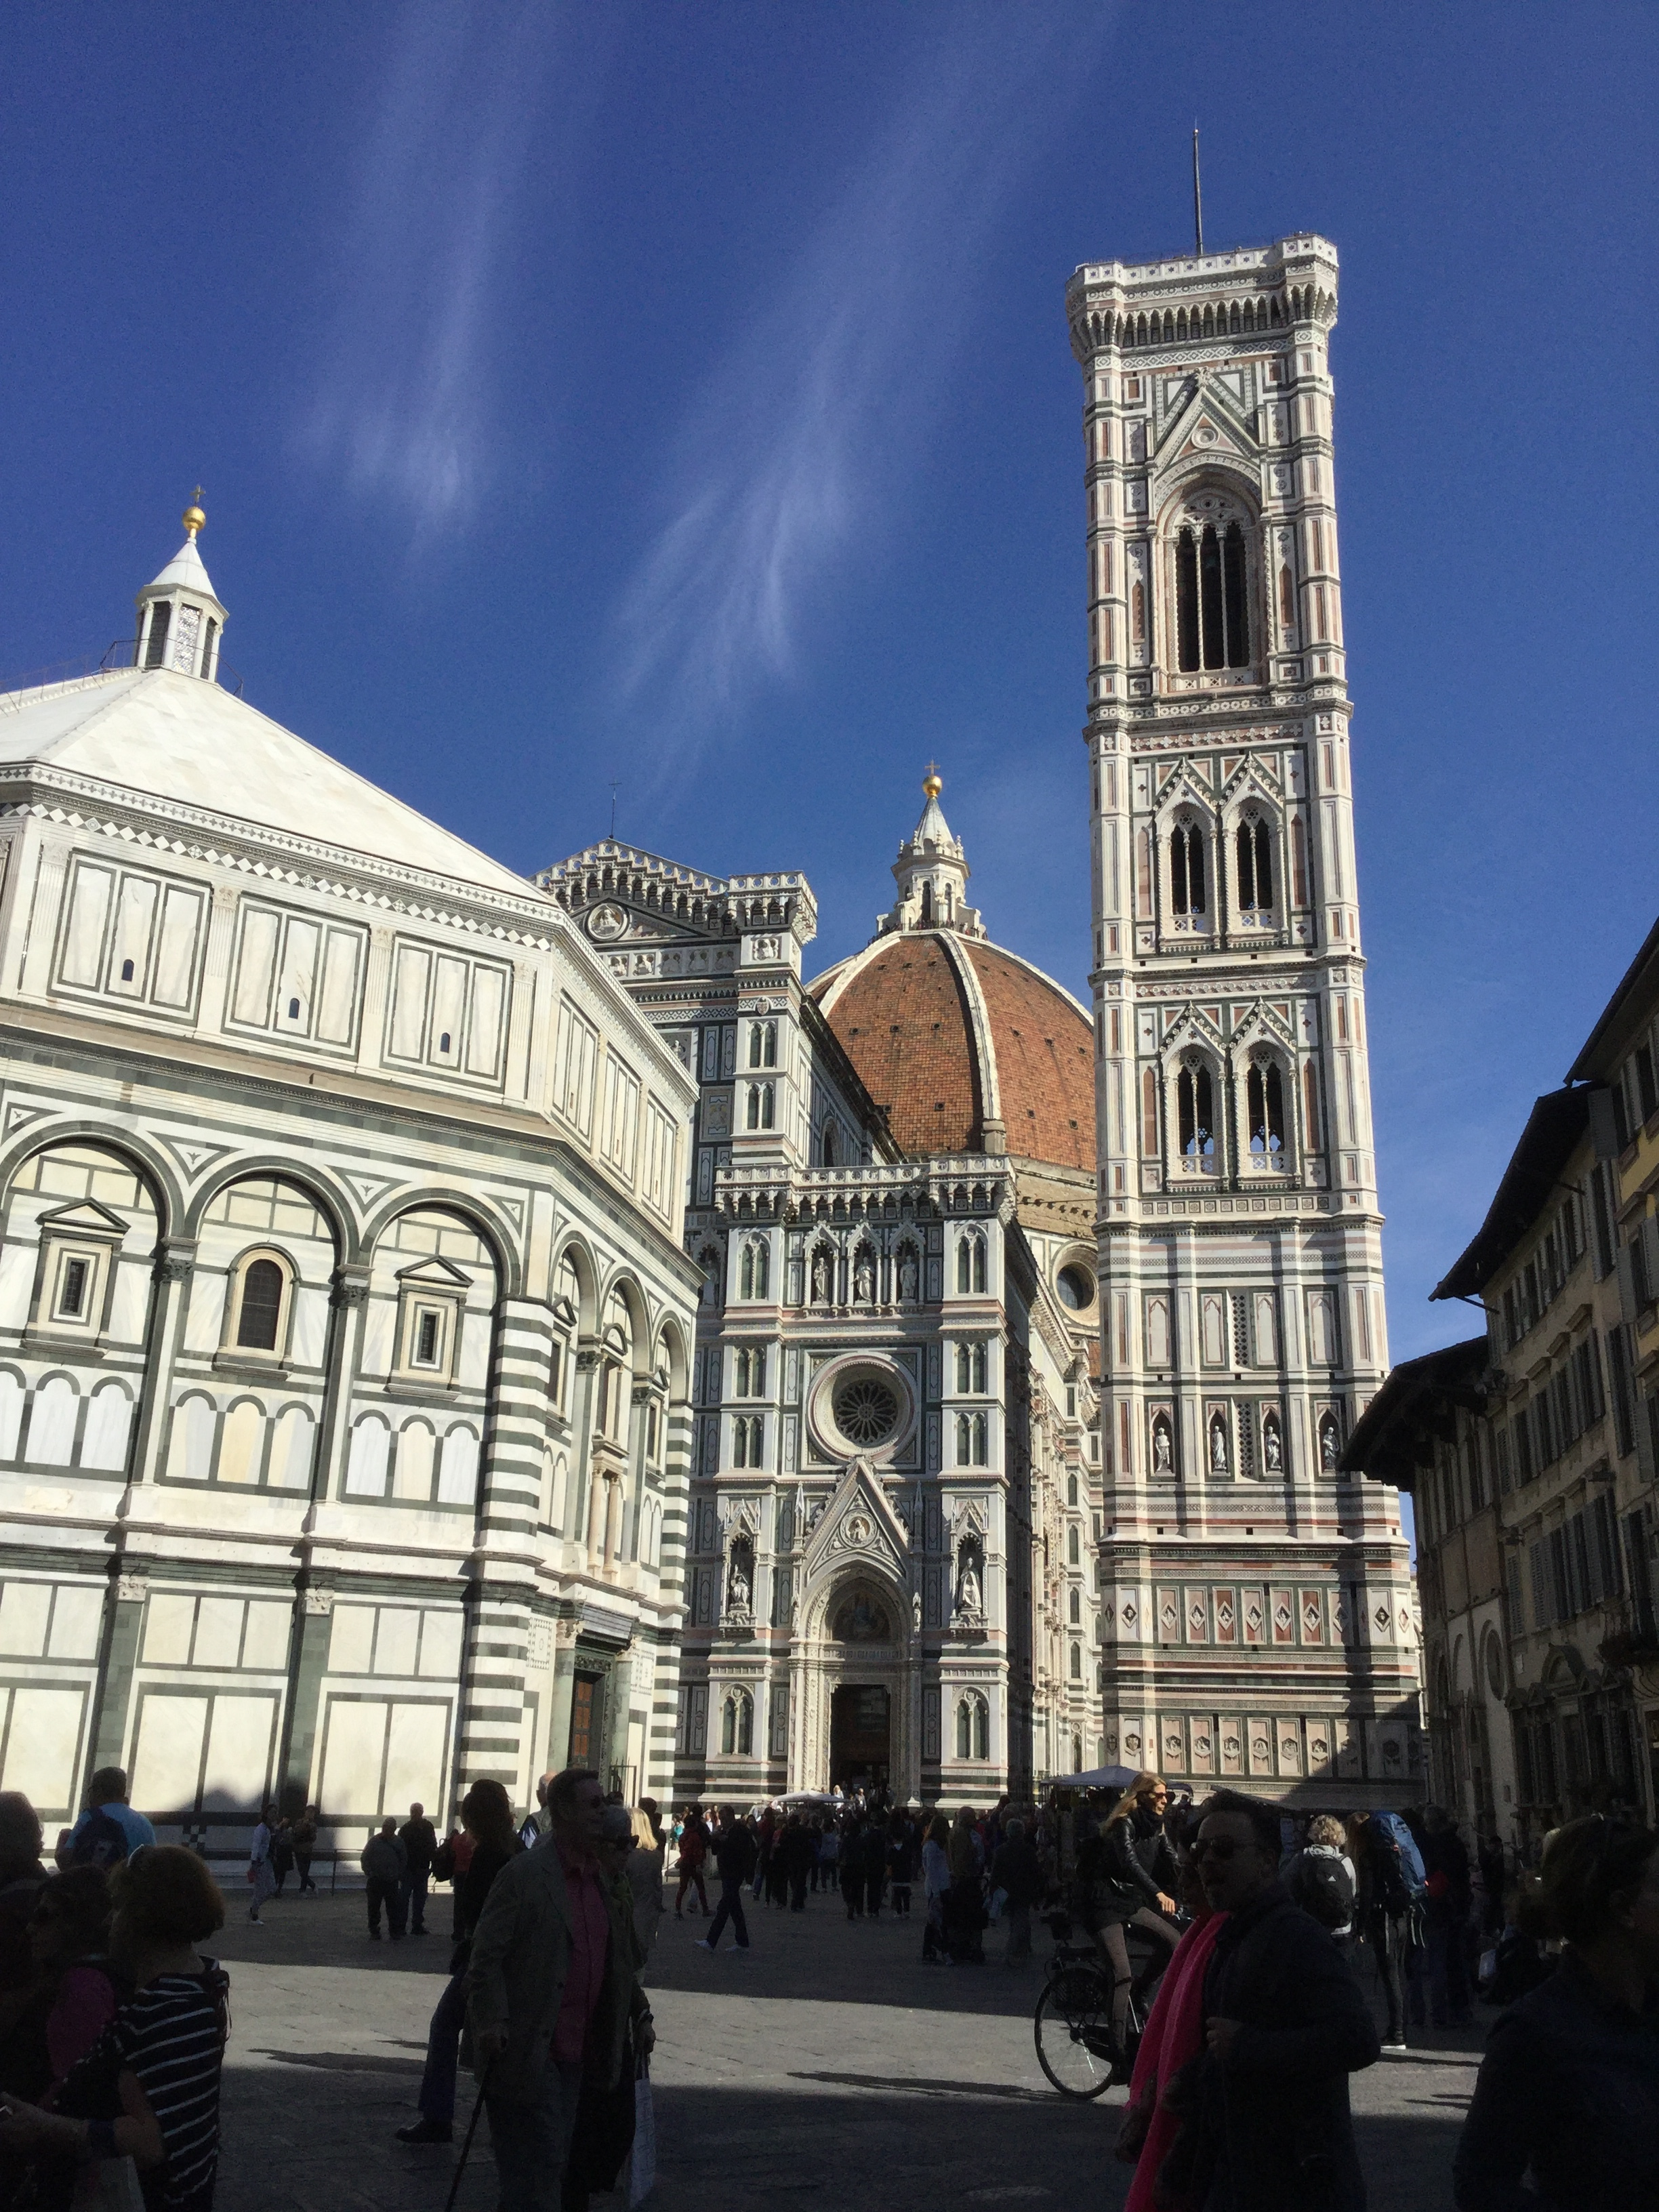 The Duomo on a beautiful day!